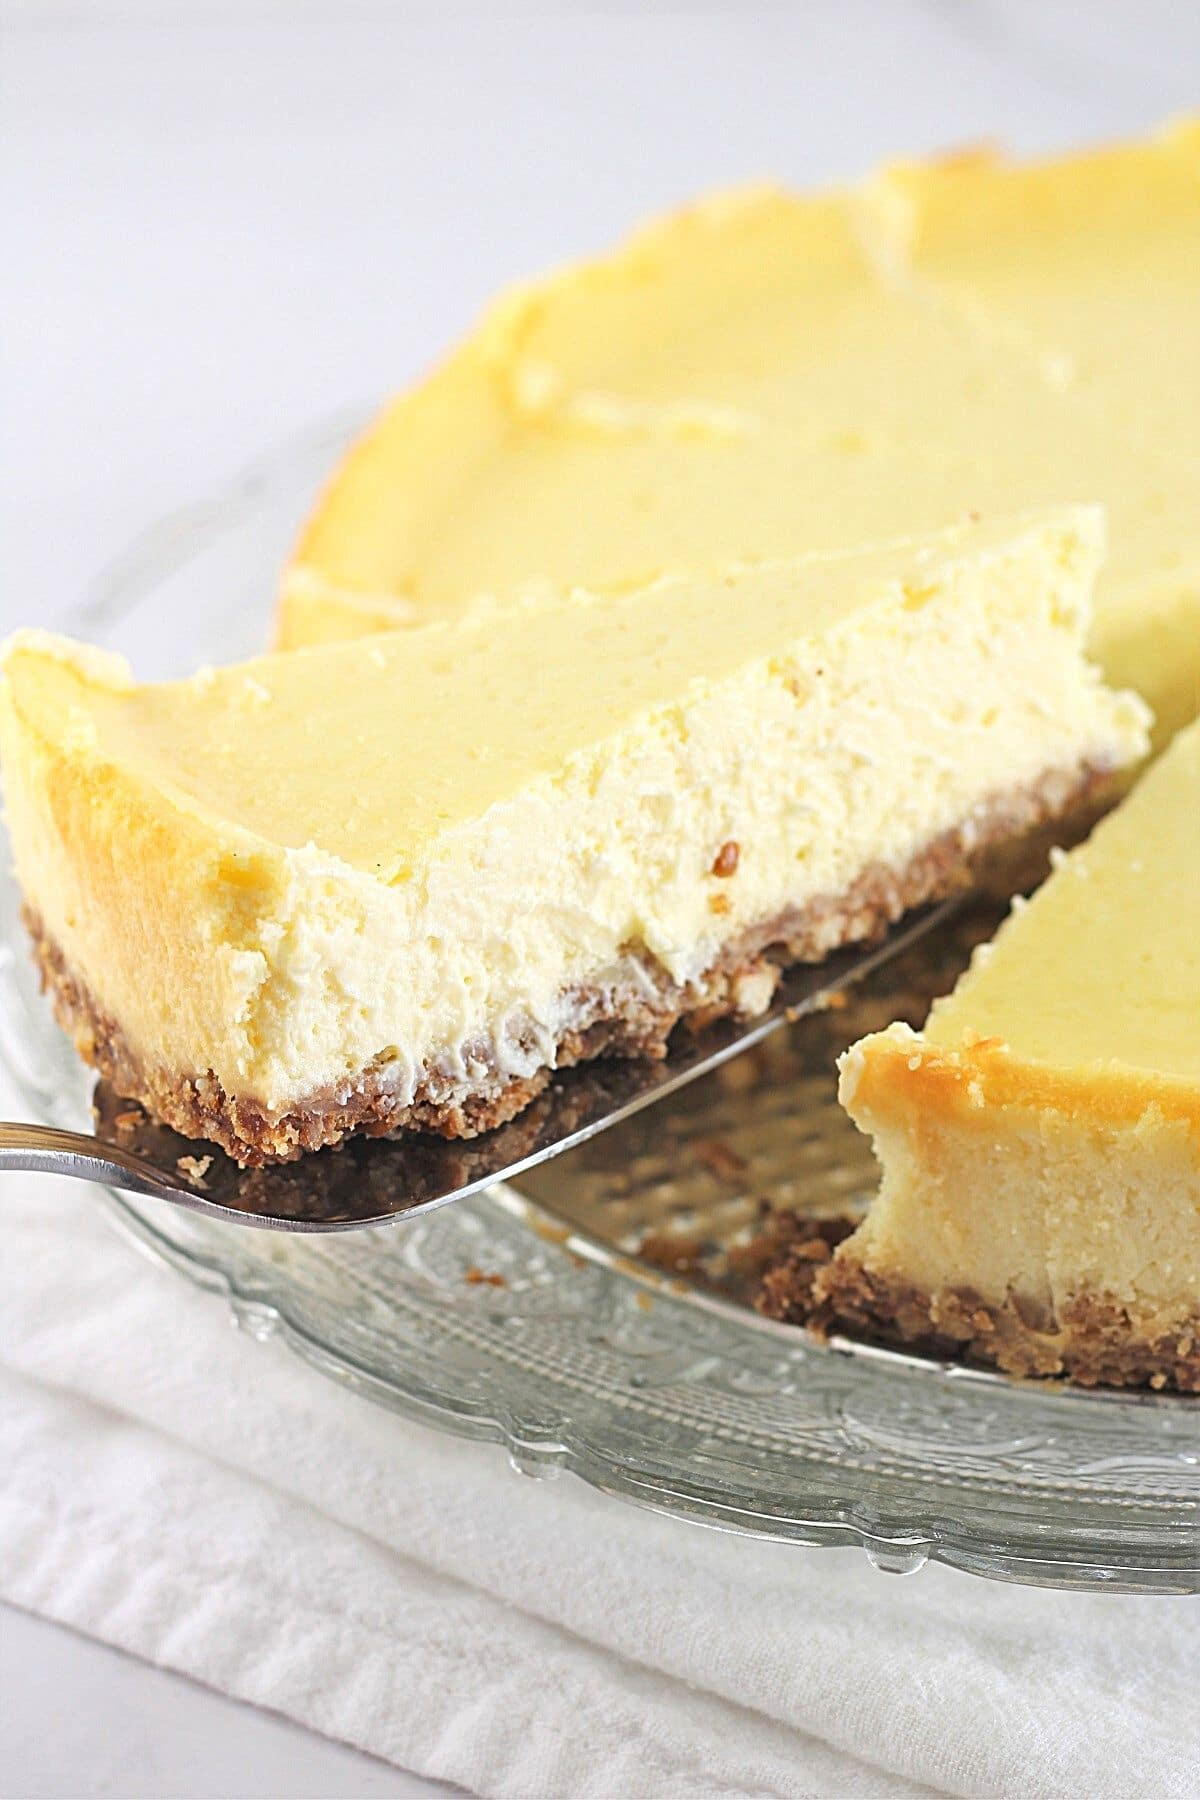 a slice of plain vanilla cheesecake with pretzel crust being lifted away from the whole cheesecake